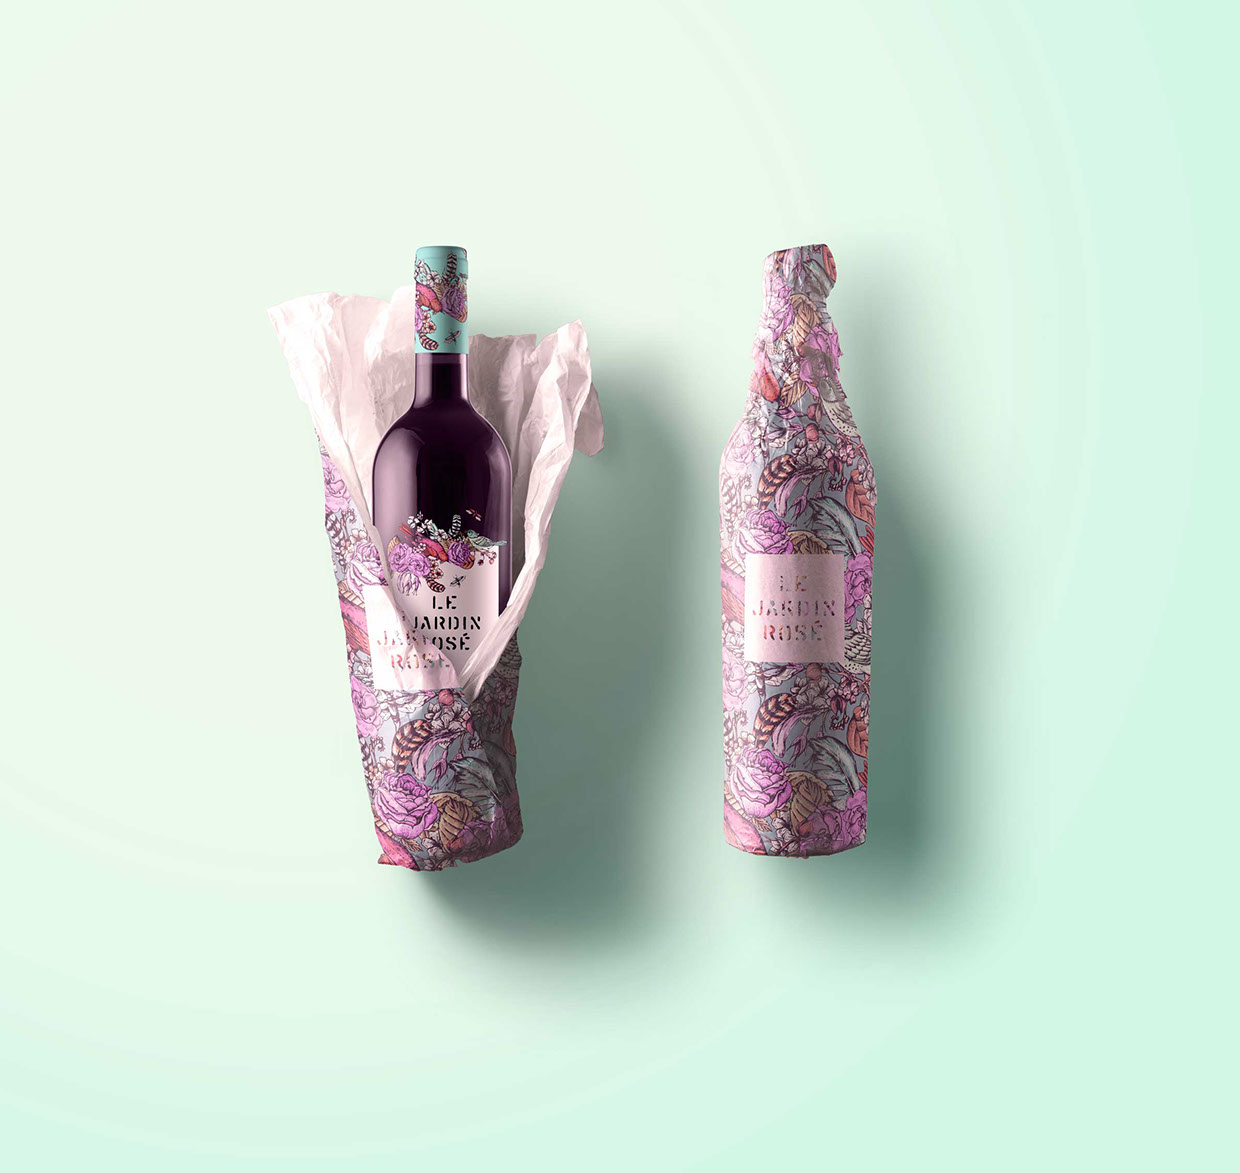 Le Jardin Tattoo Wine - Packaging